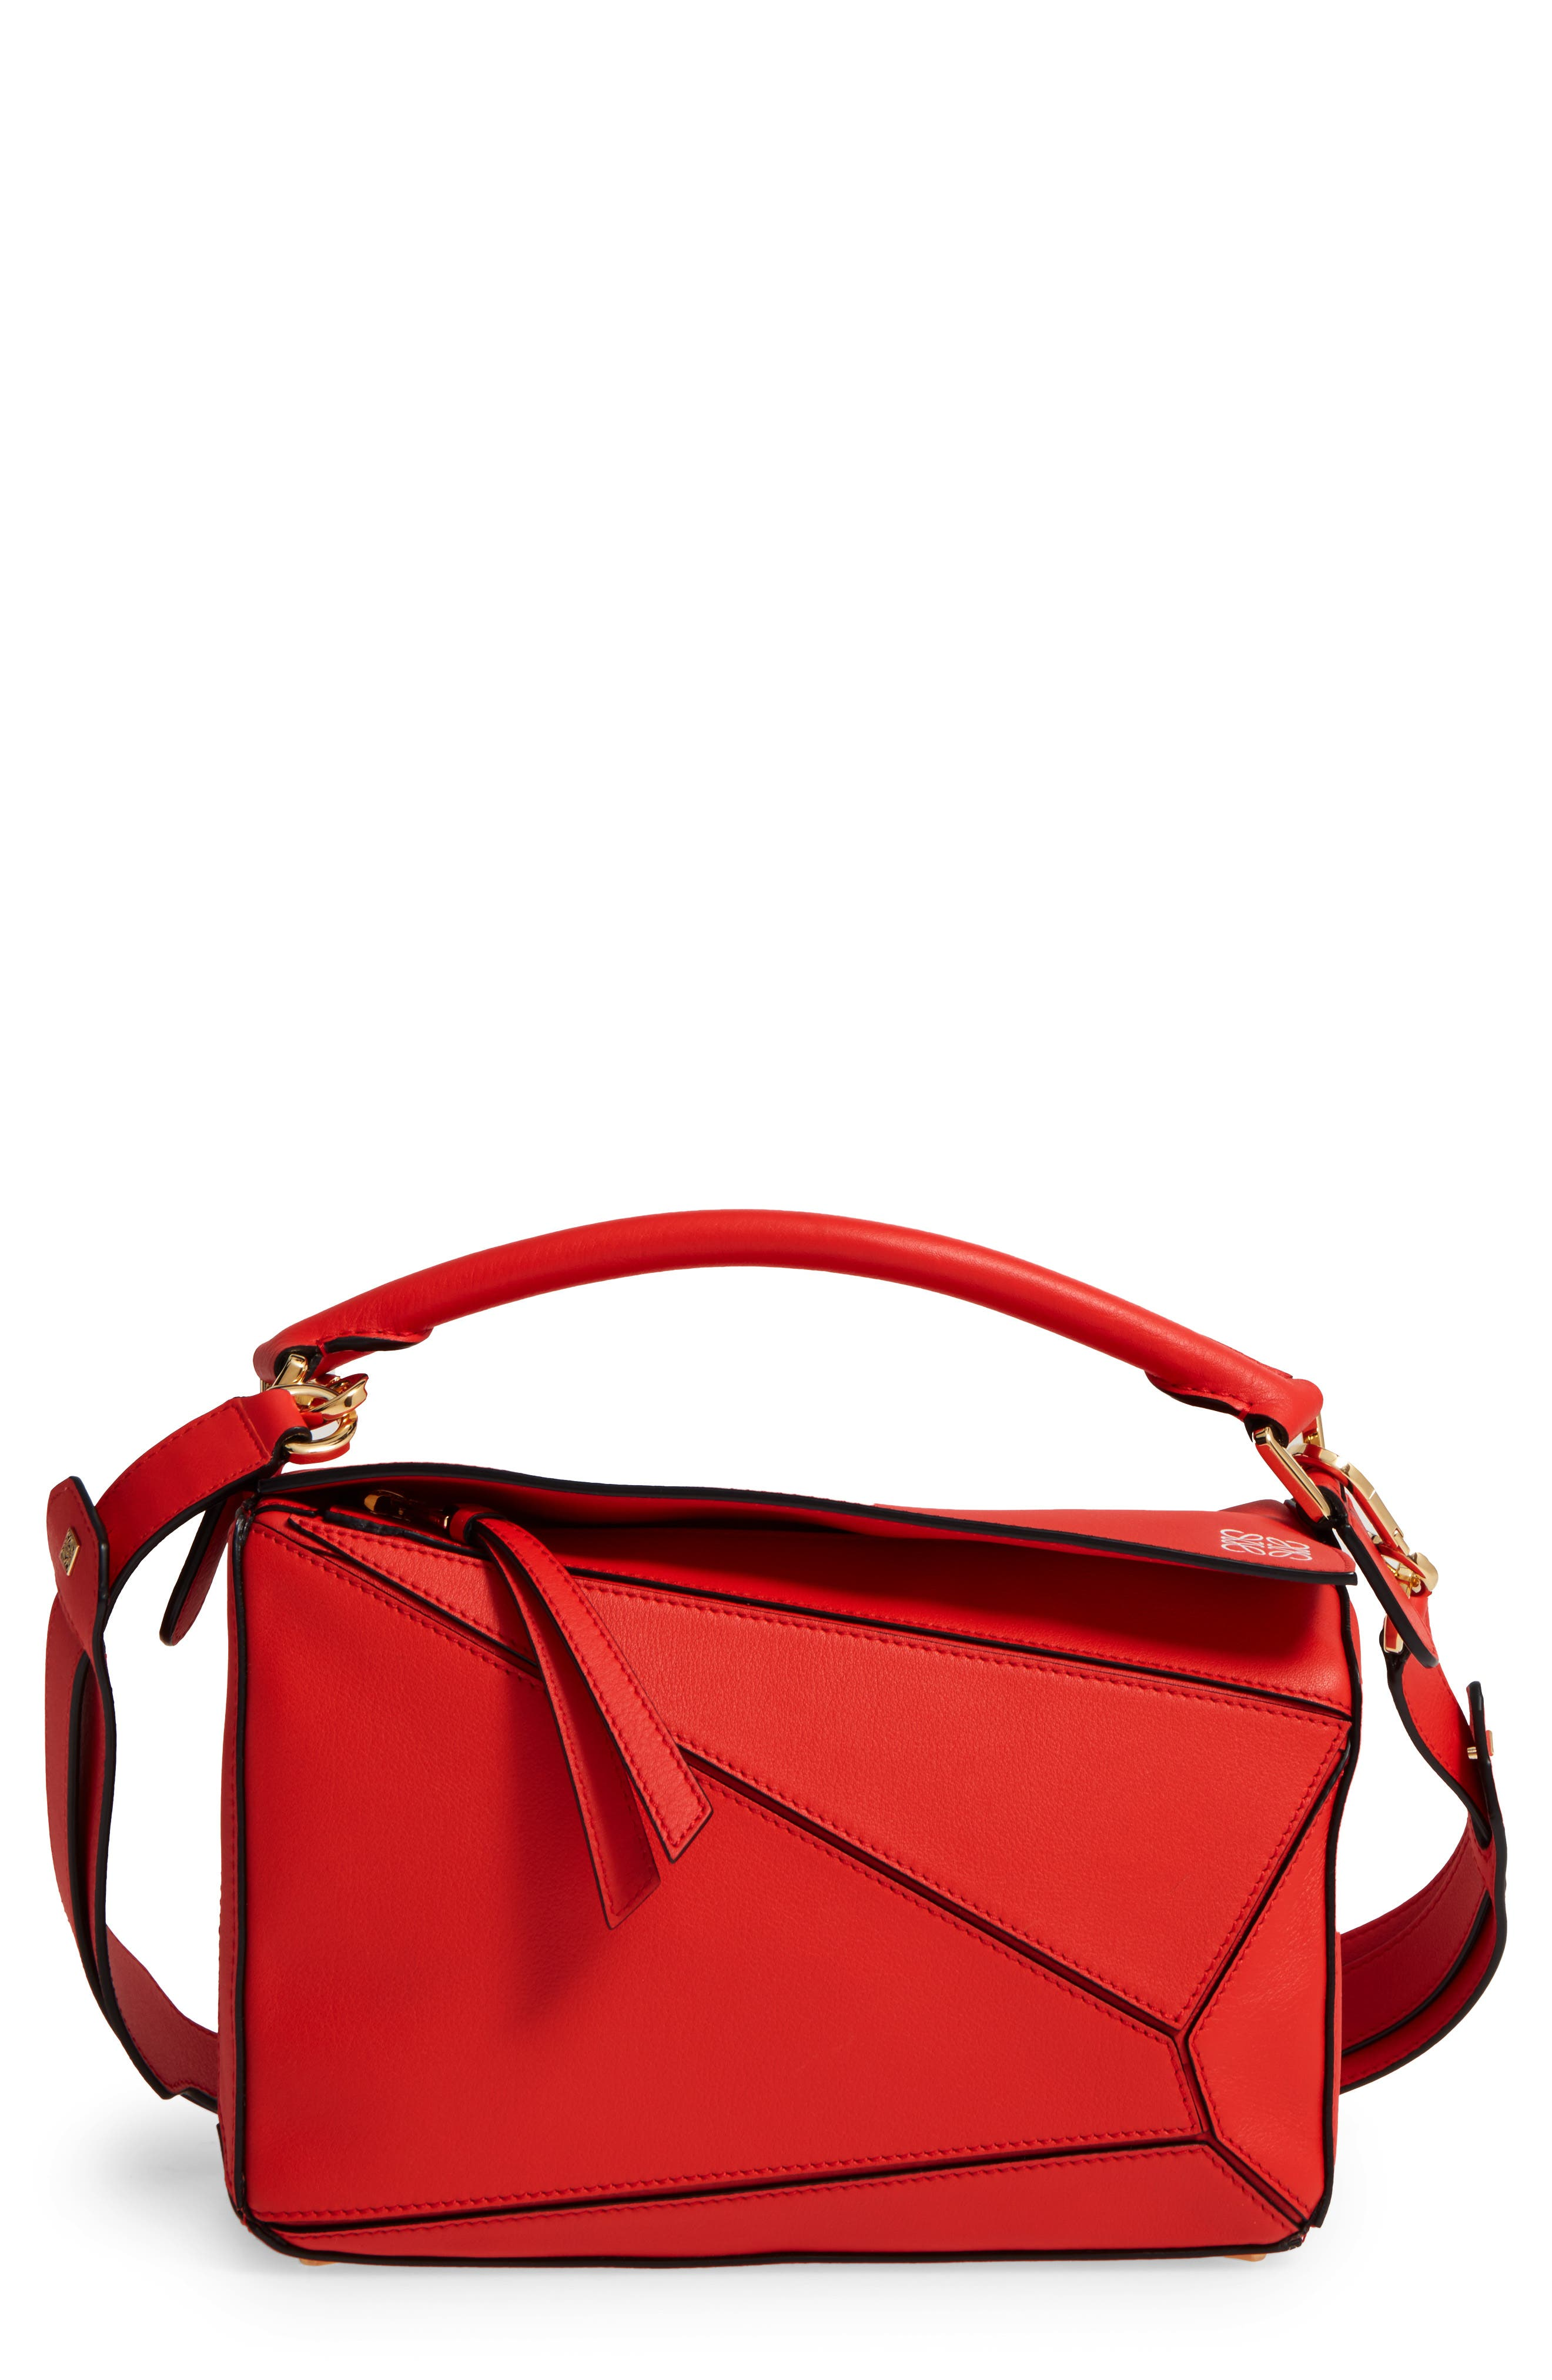 'Small Puzzle' Calfskin Leather Bag,                             Main thumbnail 6, color,